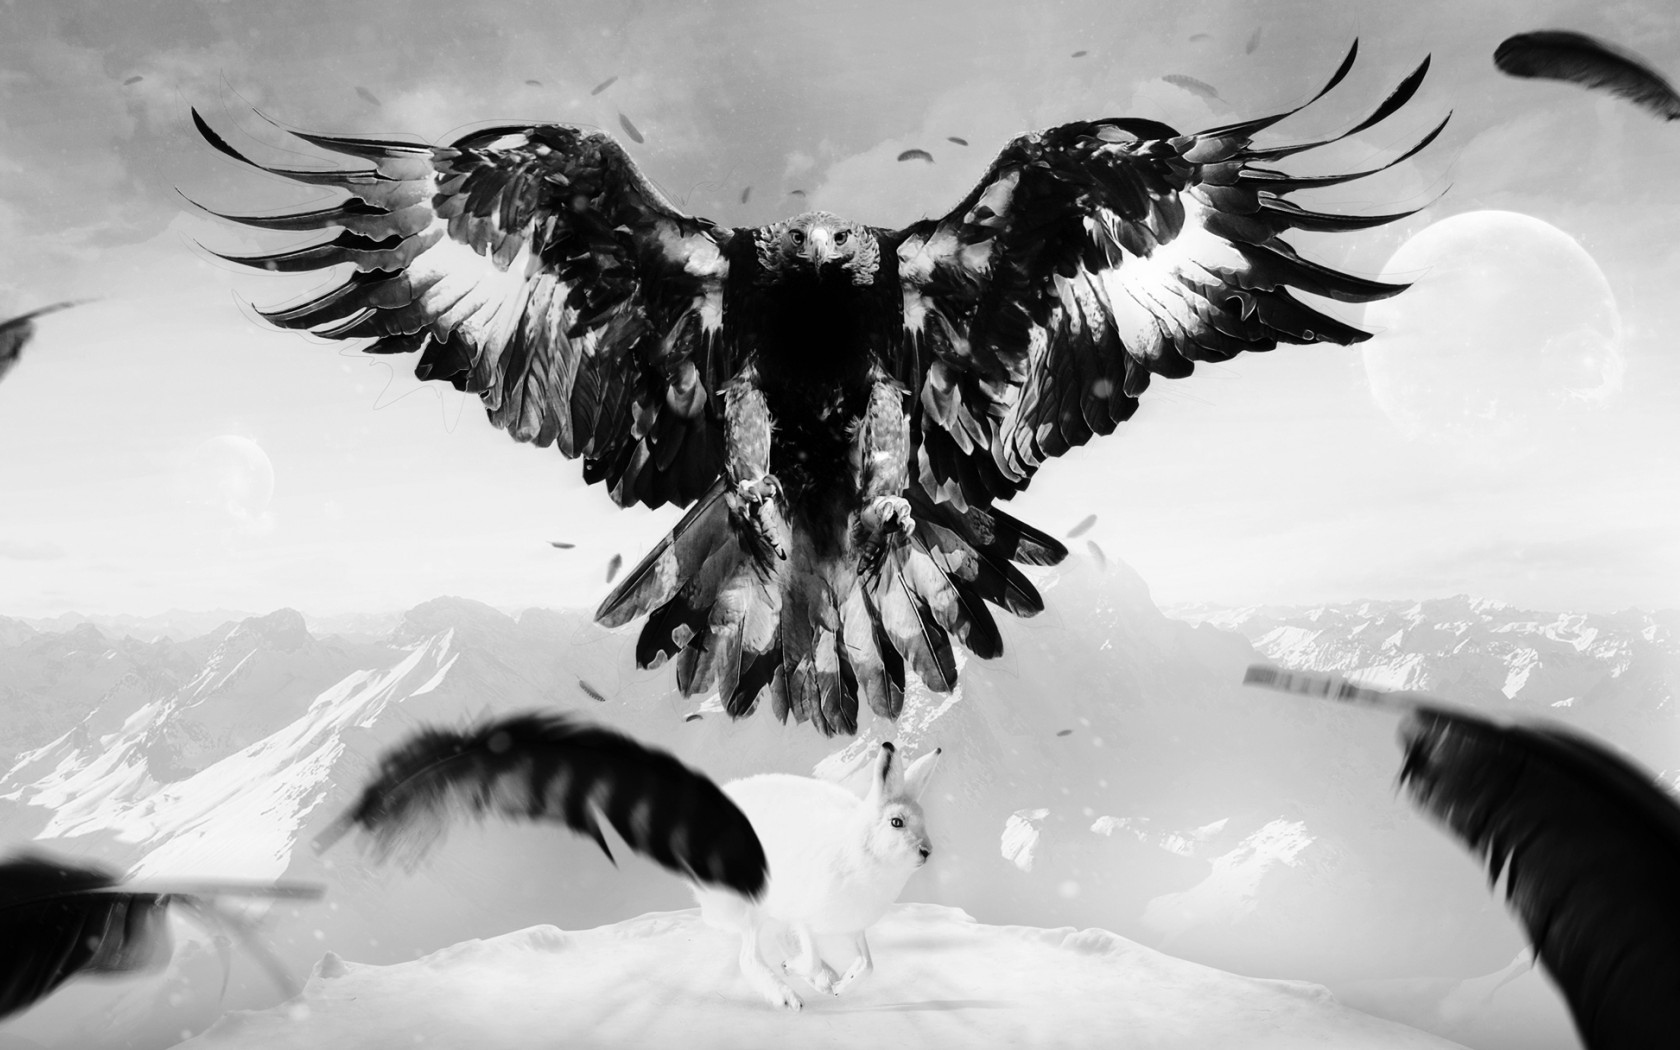 Eagle Hare Art Bird Feathers Mountains   Stock Photos Images 1680x1050